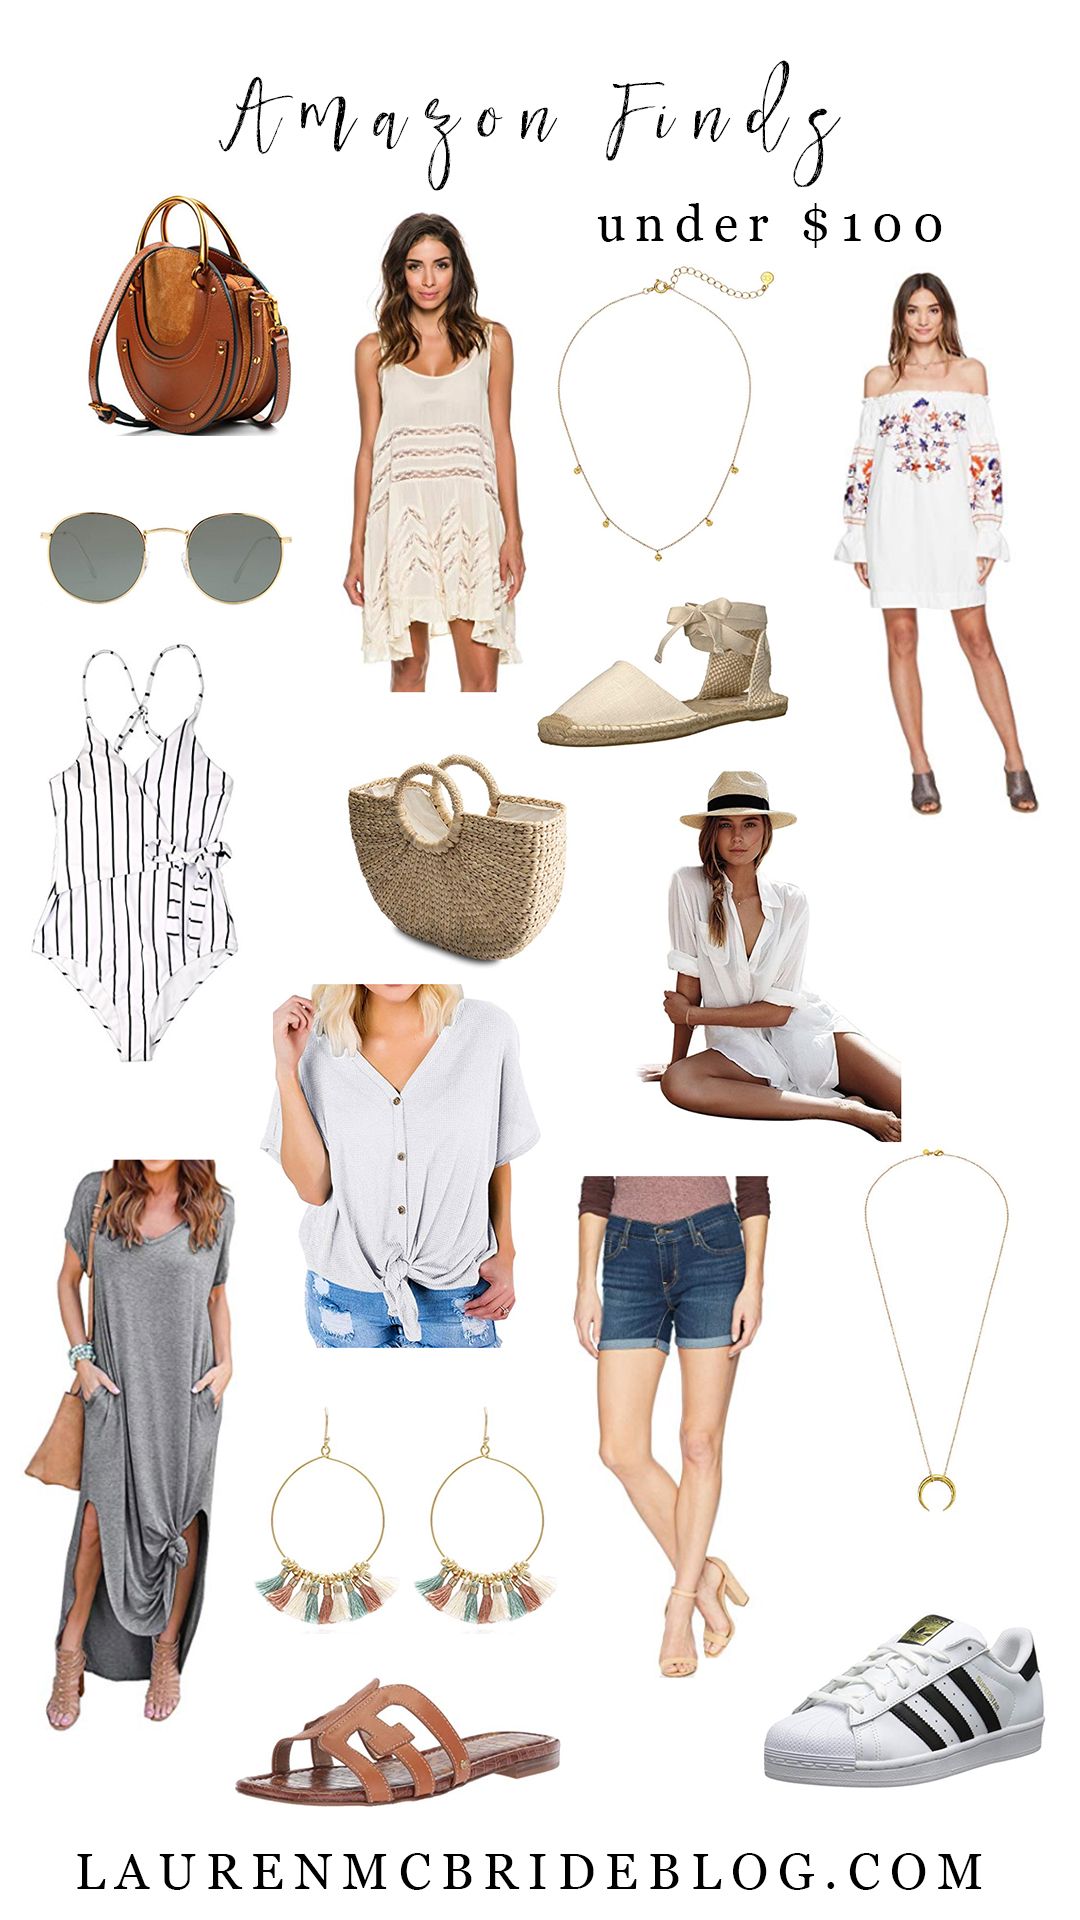 Connecticut life and style blogger Lauren McBride shares her July Amazon Finds under $100 that include Chloe and Ray-Ban dupes, and a variety of clothing, shoes, and accessories.